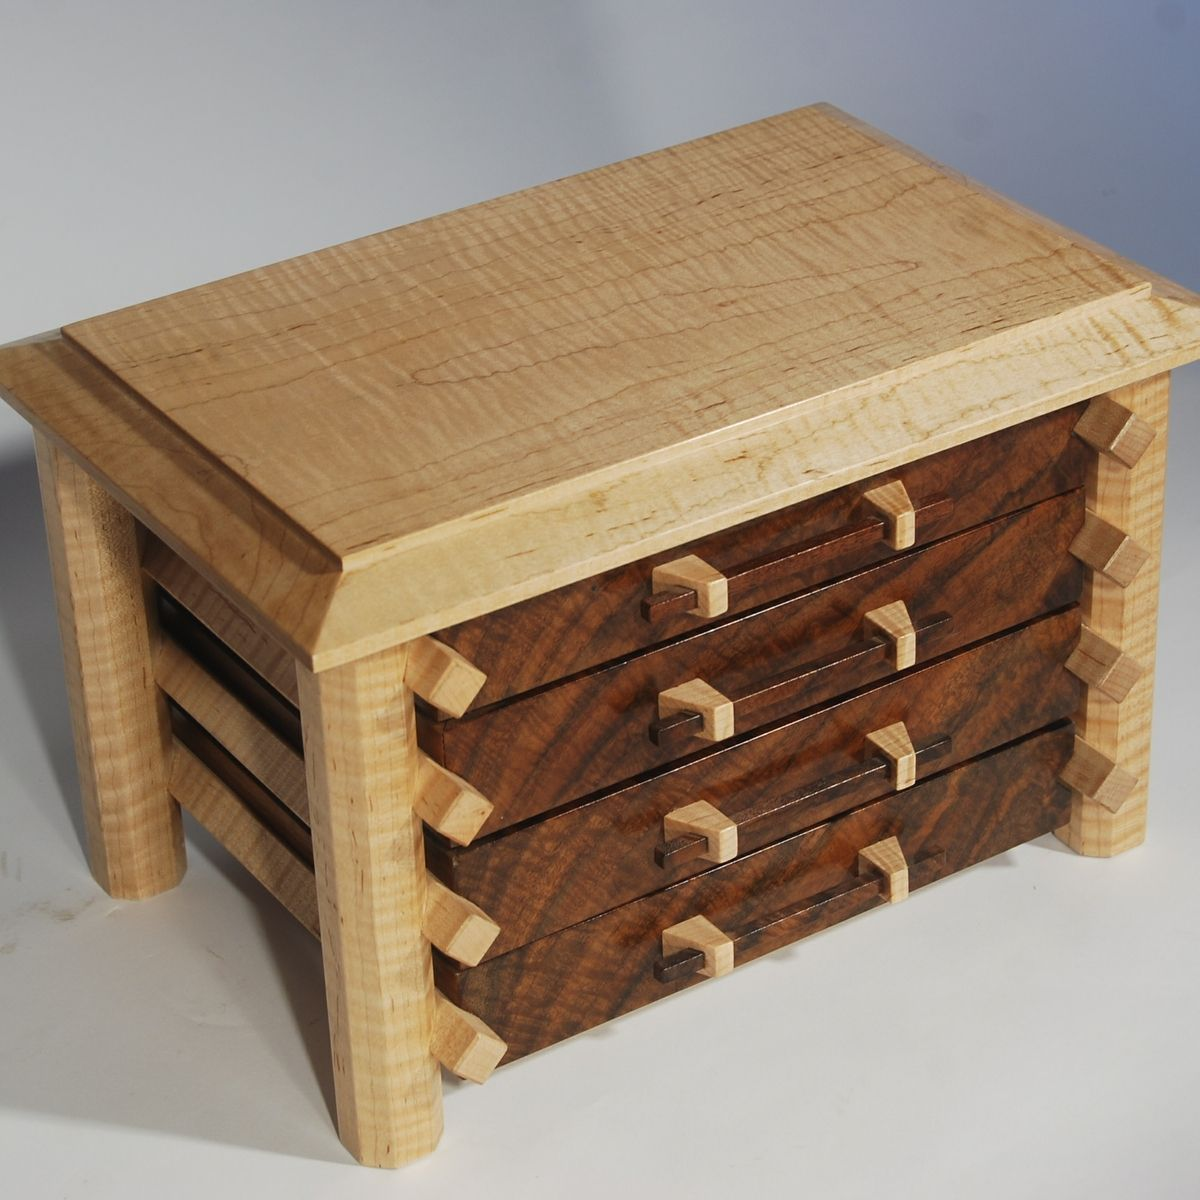 handmade jewelry box in claro walnut and curly maple pagoda style by rocky mountain woodworks. Black Bedroom Furniture Sets. Home Design Ideas